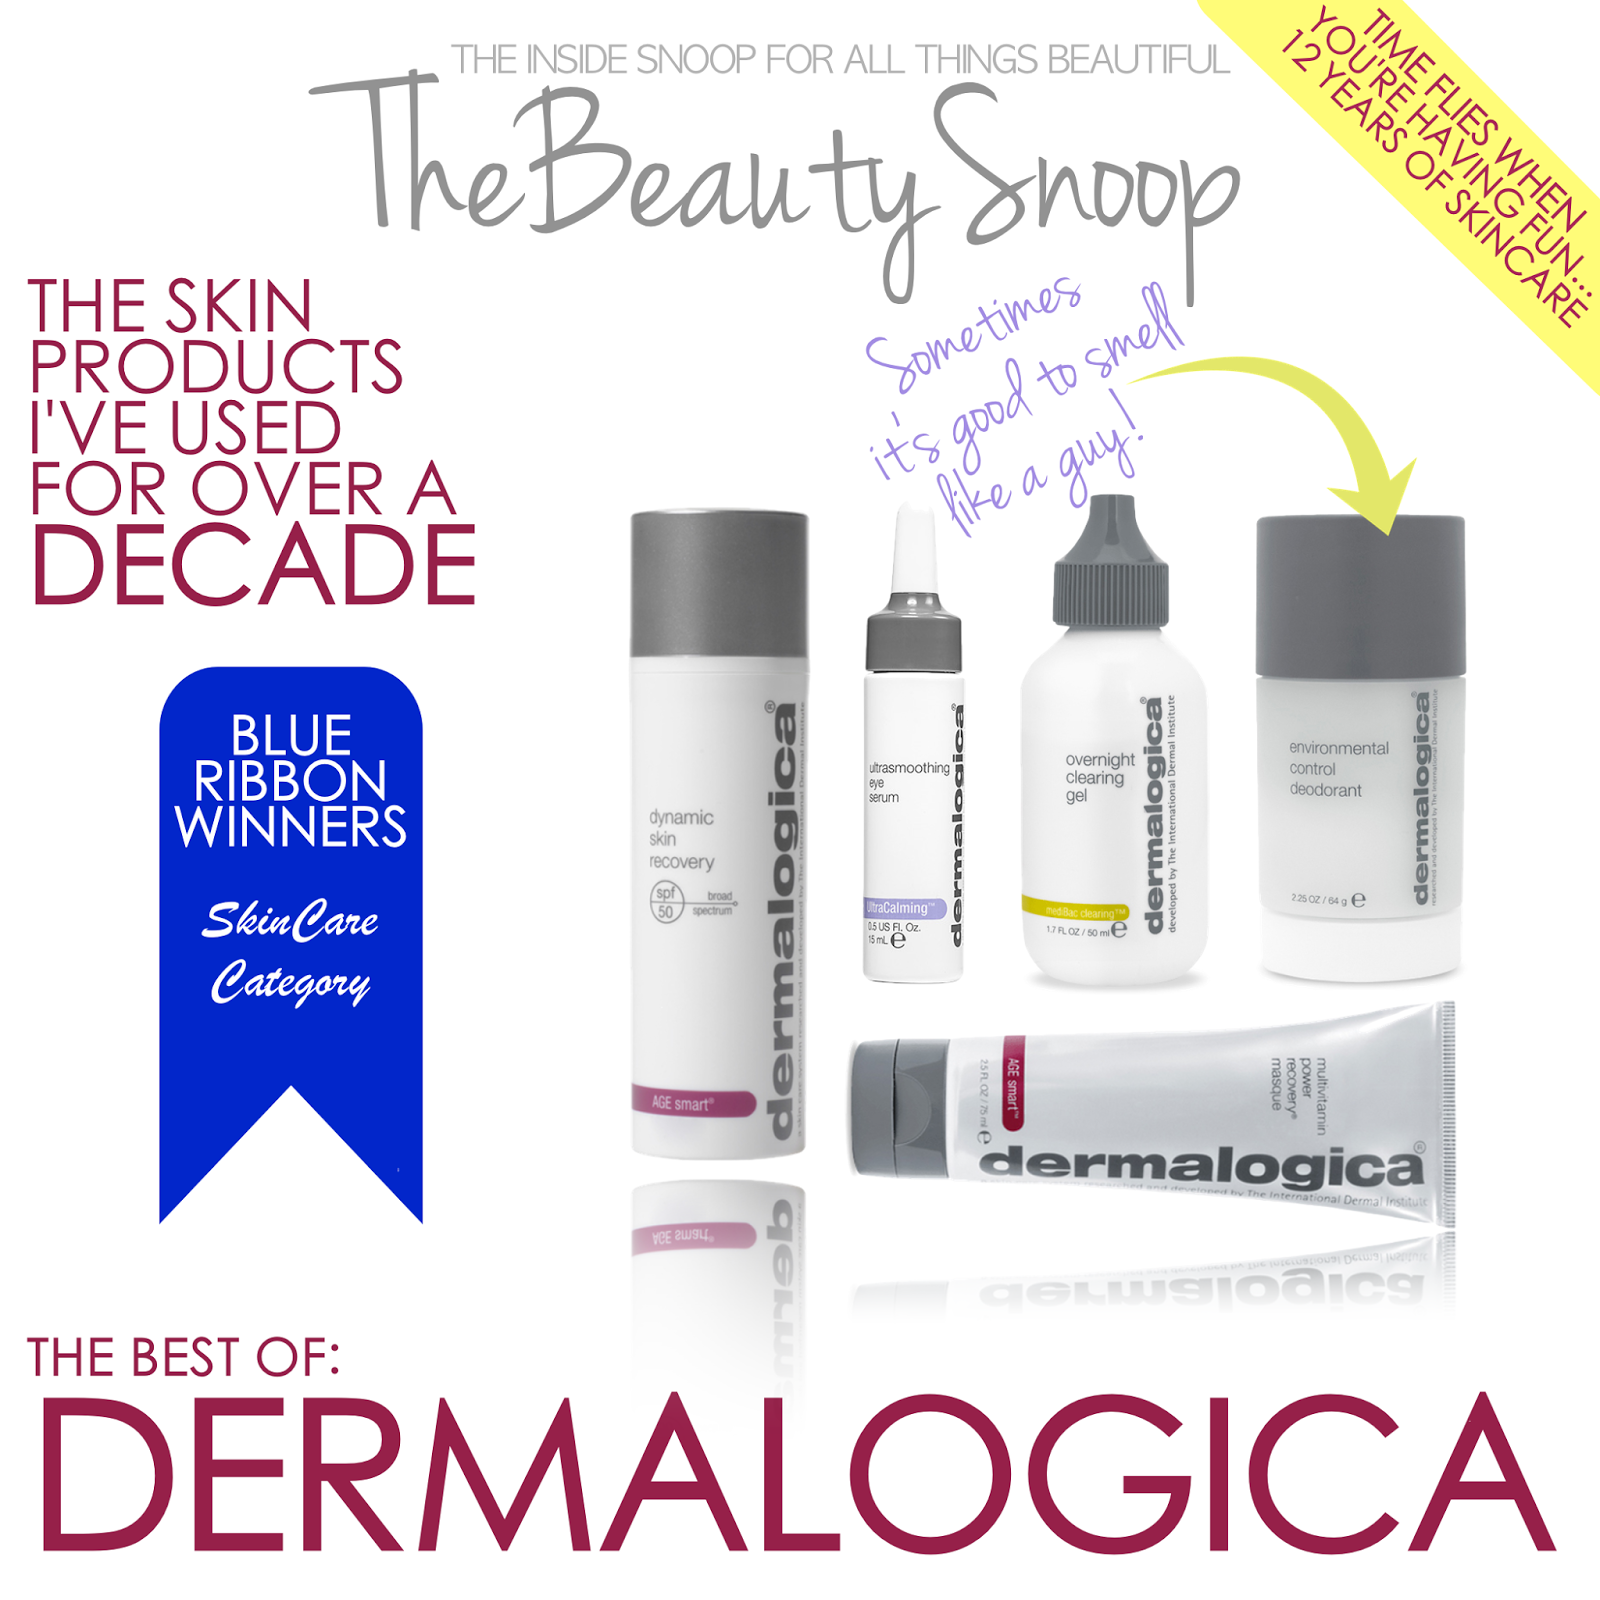 Top skincare picks from Dermalogica, Dynamic Skin Recovery, Overnight Clearing Gel, Multivitamin Power Recovery Masque, Ultrasoothing Eye Serum, Environmental Control Deodorant